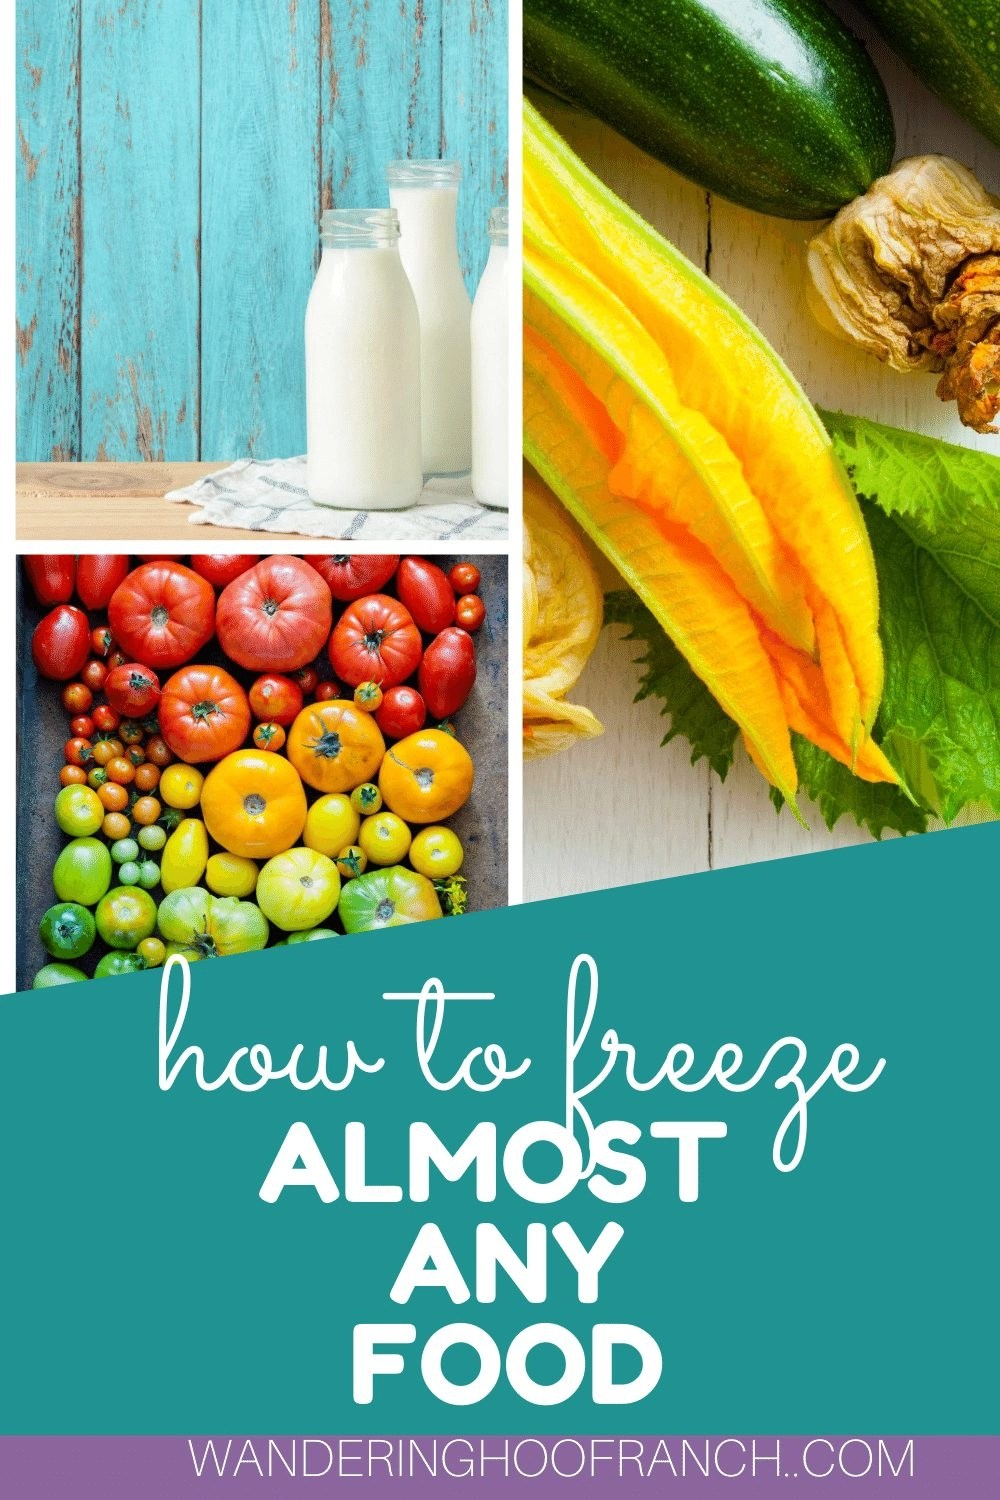 what foods can you freeze? image of buttermilk jug, zucchini and tomatoes